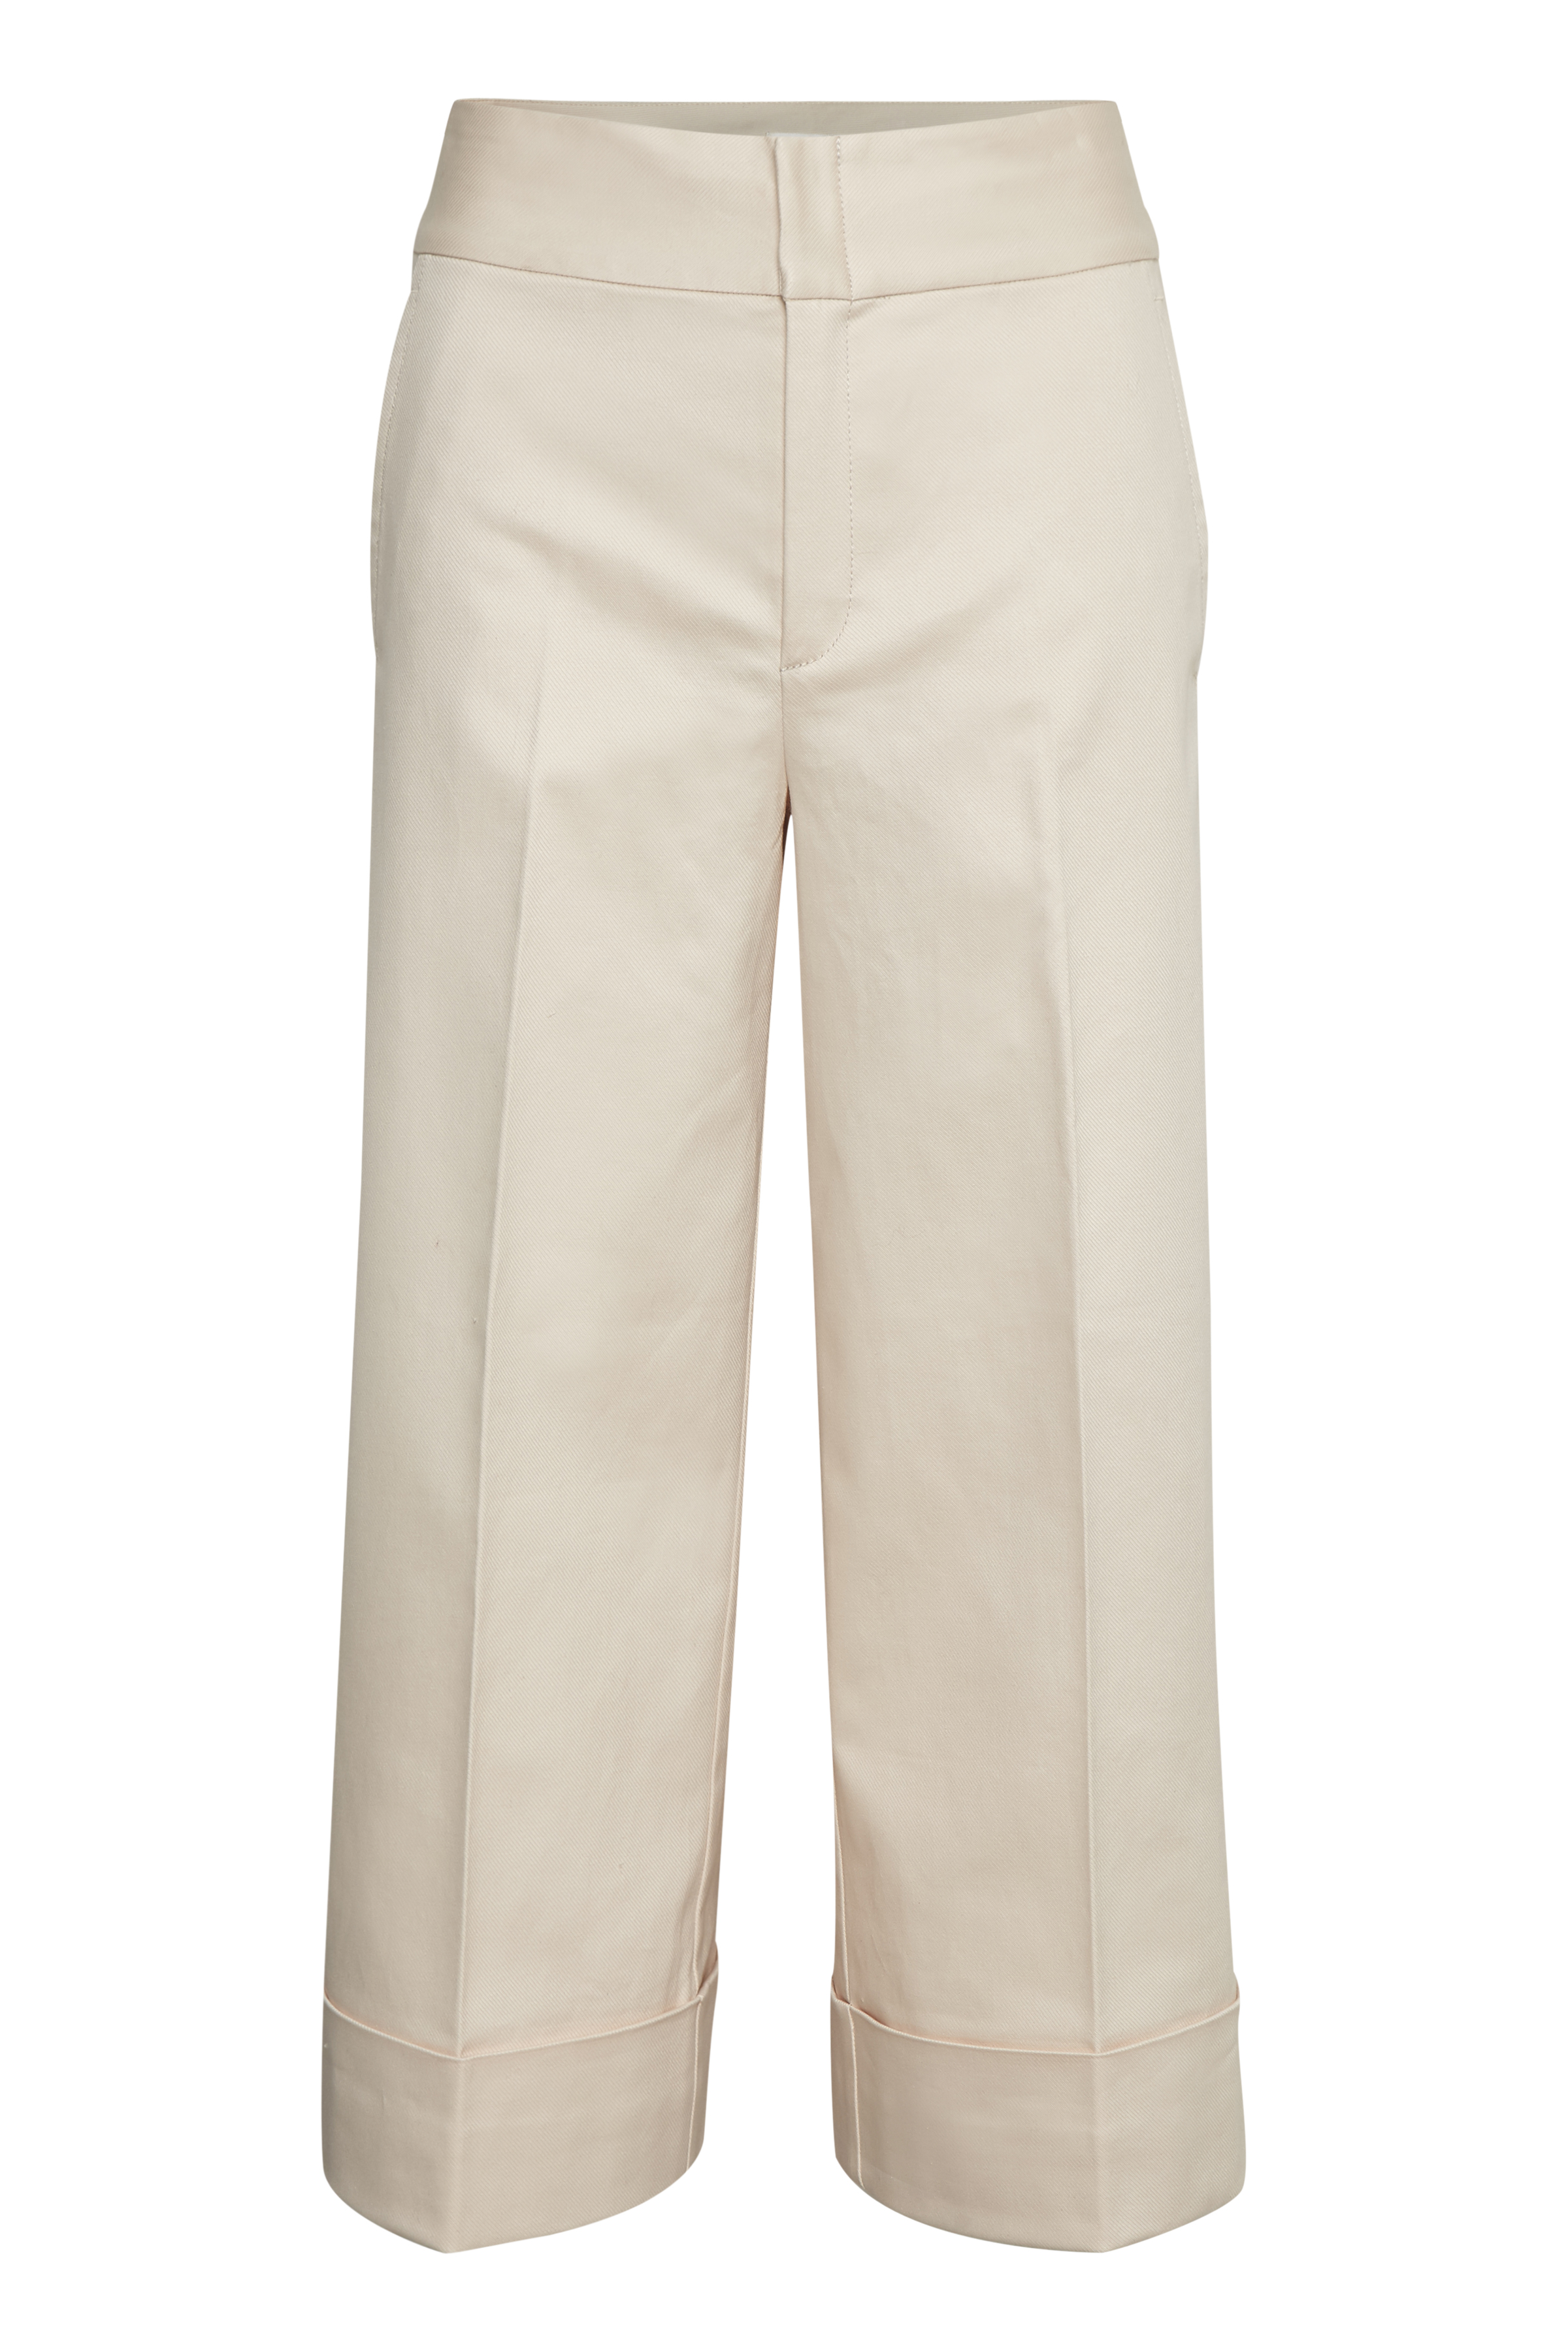 InWear Dame Pants Suiting French Nougat